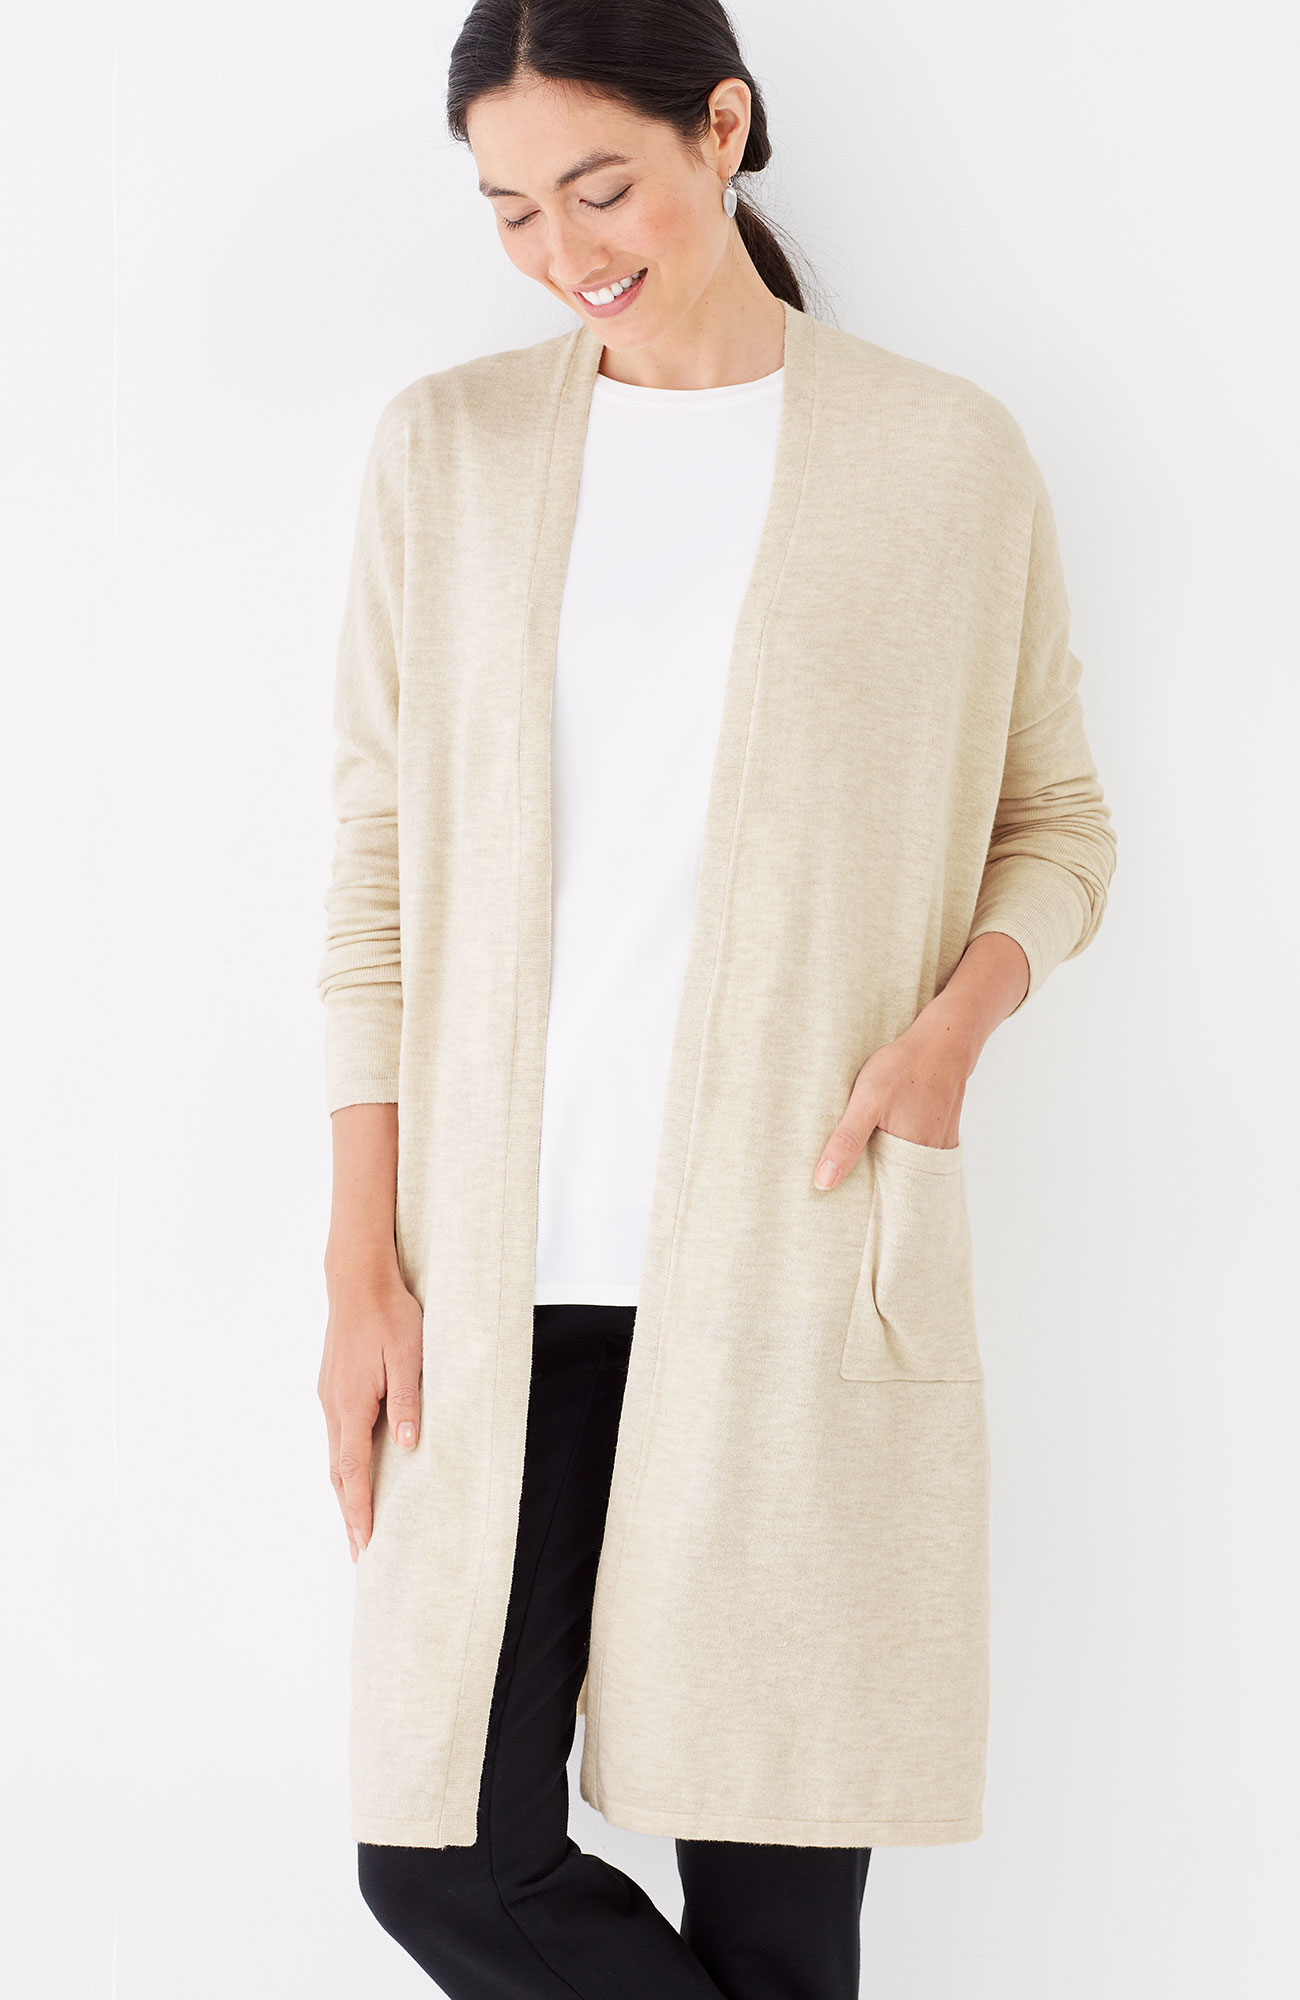 Pure Jill long & easy cardi